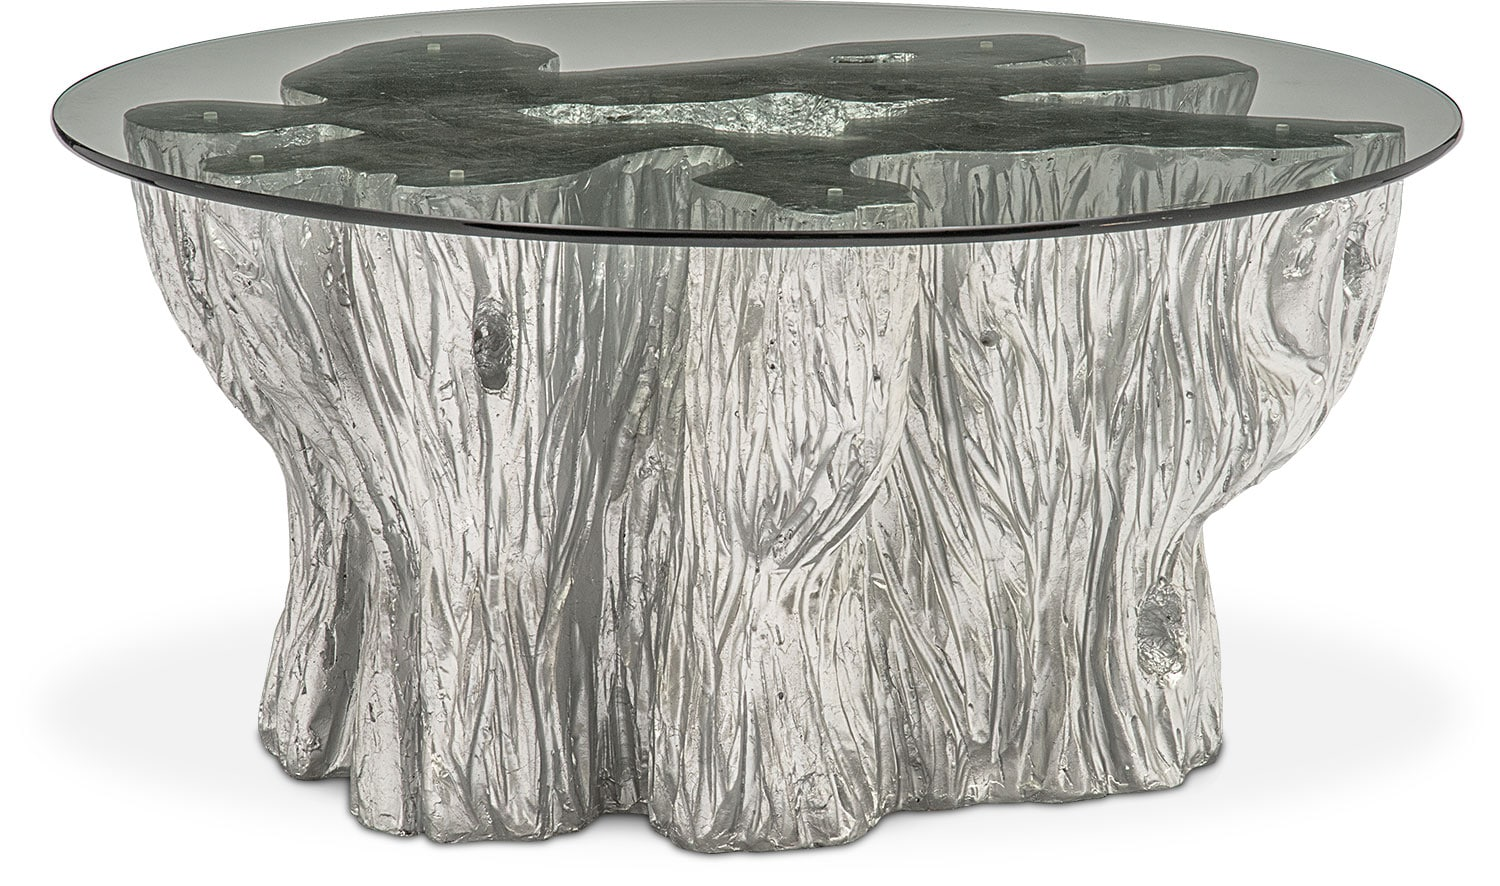 Natura Cocktail Table Silver Value City Furniture And Mattresses - Silver tree stump coffee table